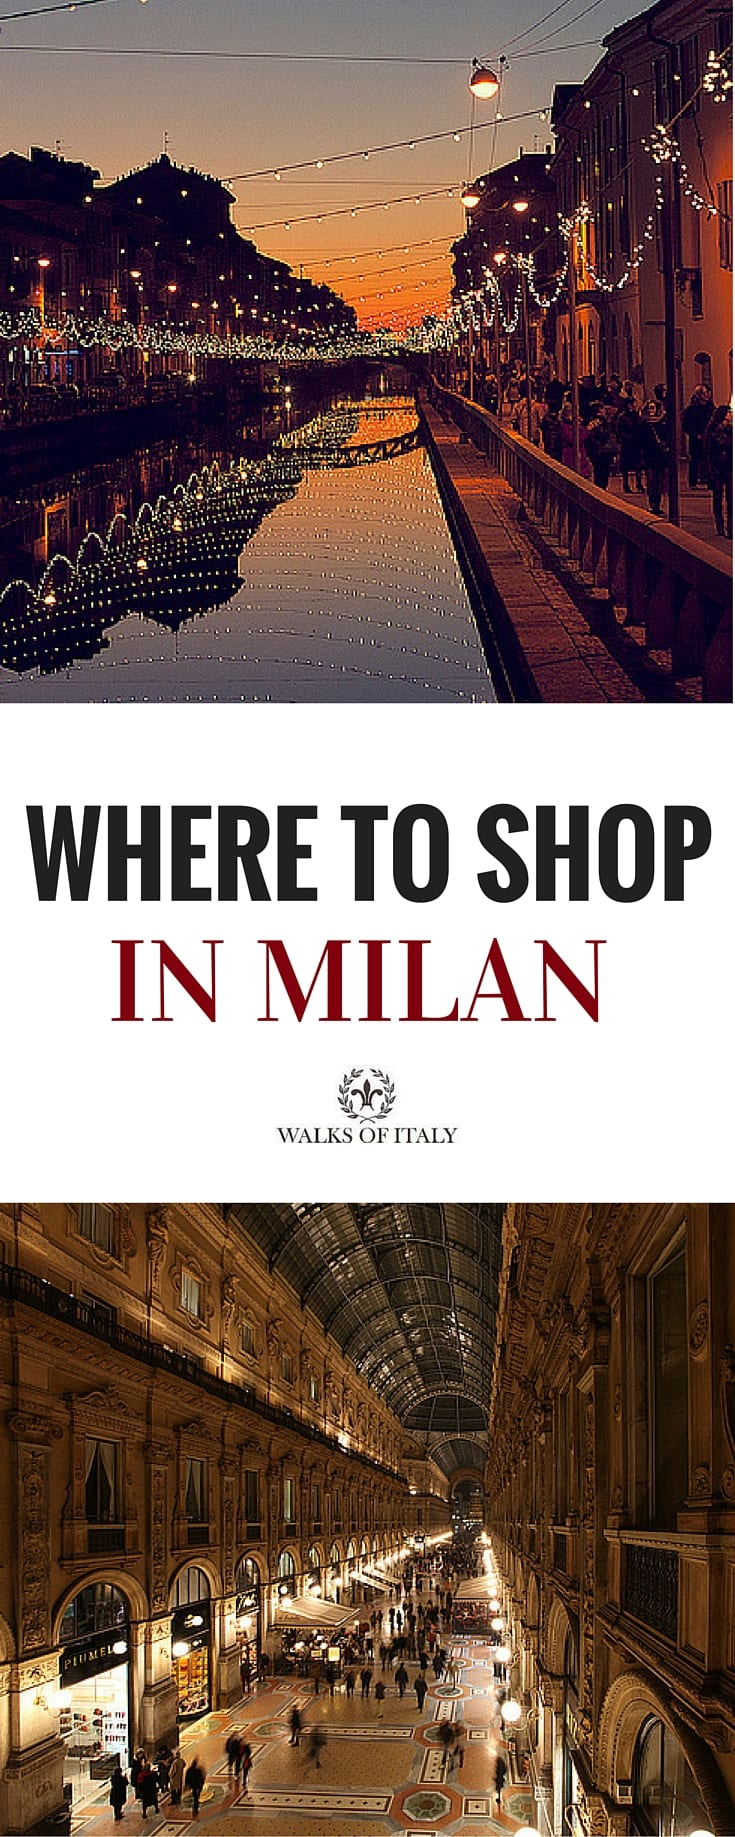 where to shop in milan walks of italy blog